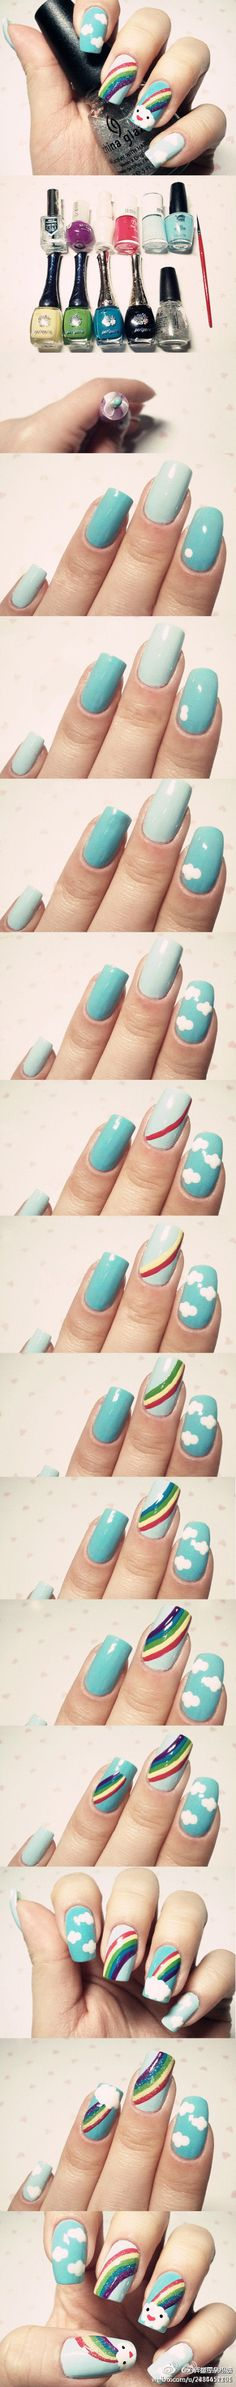 DIY Rainbows and clouds nails -- I SO wish my nails would grow long enough to do this!